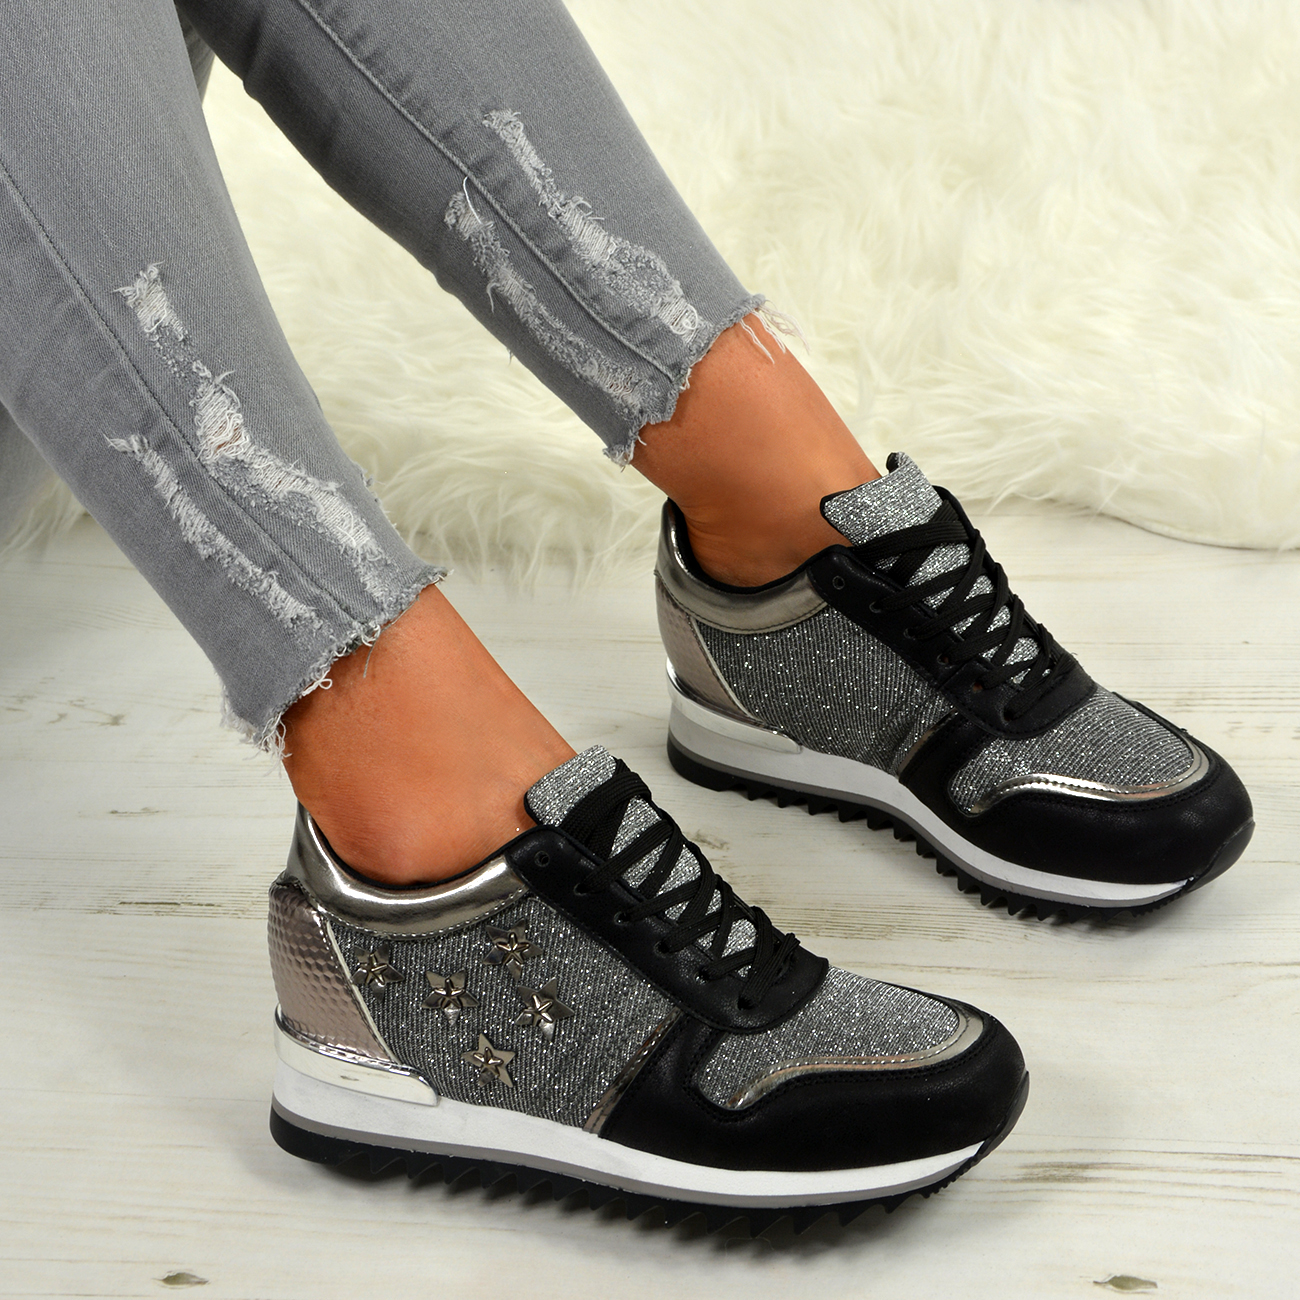 dcb2999afac2 LADIES WOMENS STAR GLITTER SPARKLE WEDGE TRAINERS SNEAKER RUNNING ...